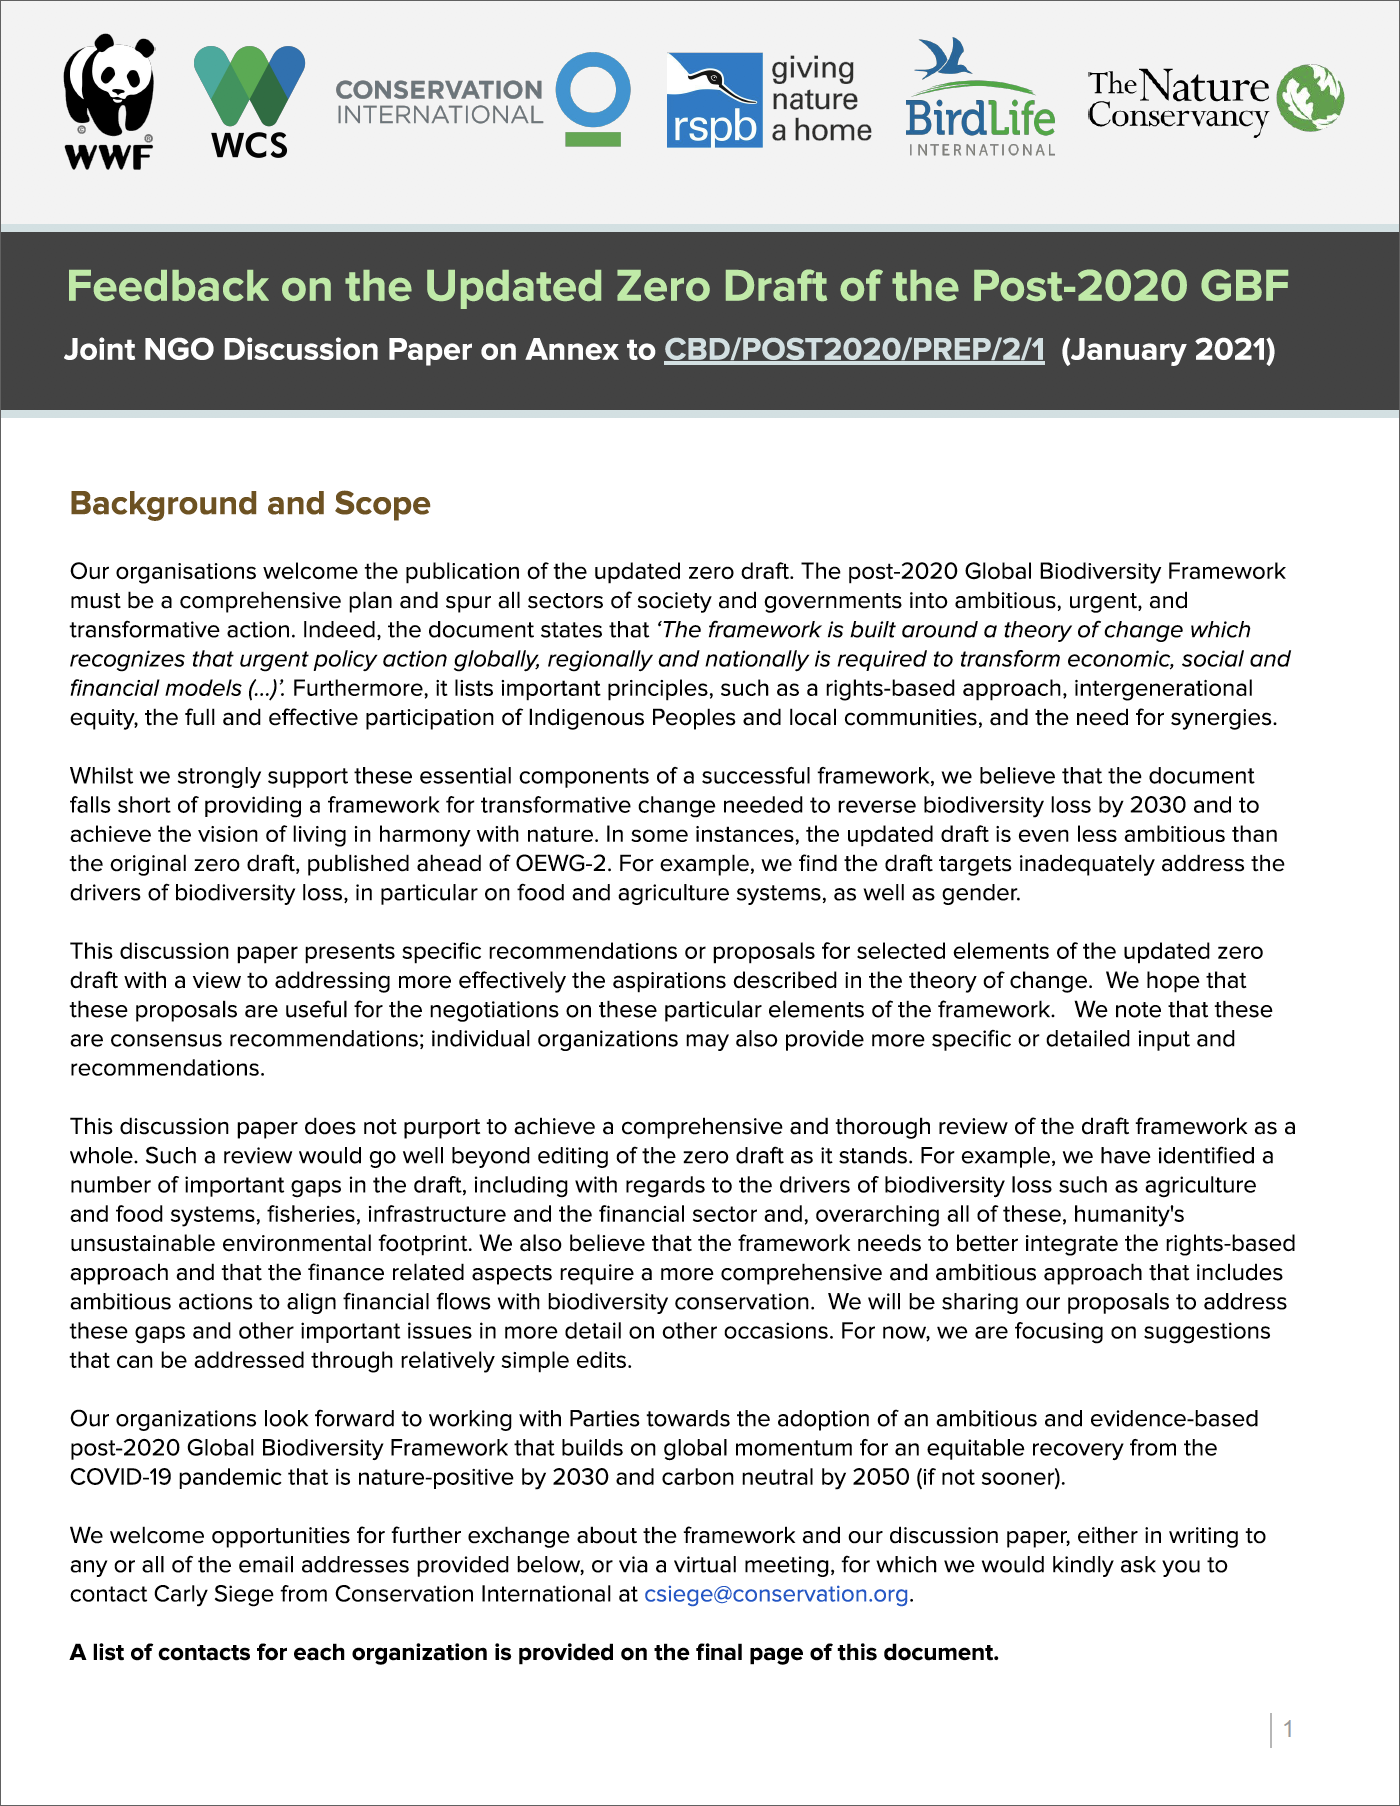 Feedback on the Updated Zero Draft of the Post-2020 GBF, January 2021